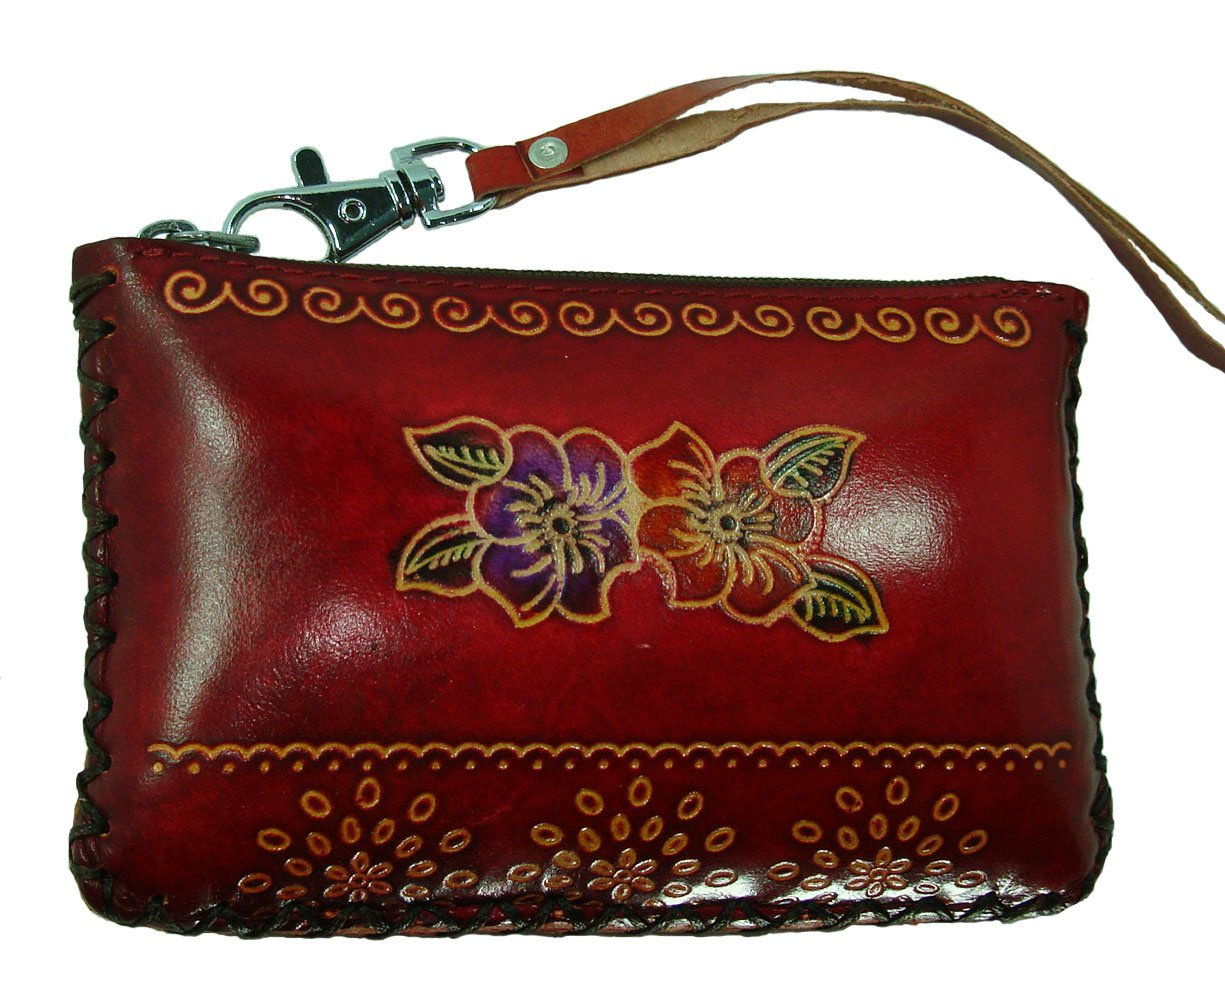 Hand Made Leather Change/coin Purse, Rectangle Shape, Lovely Flower Embossed, a Mini Wristlet Wallet, Collectible. (Red)